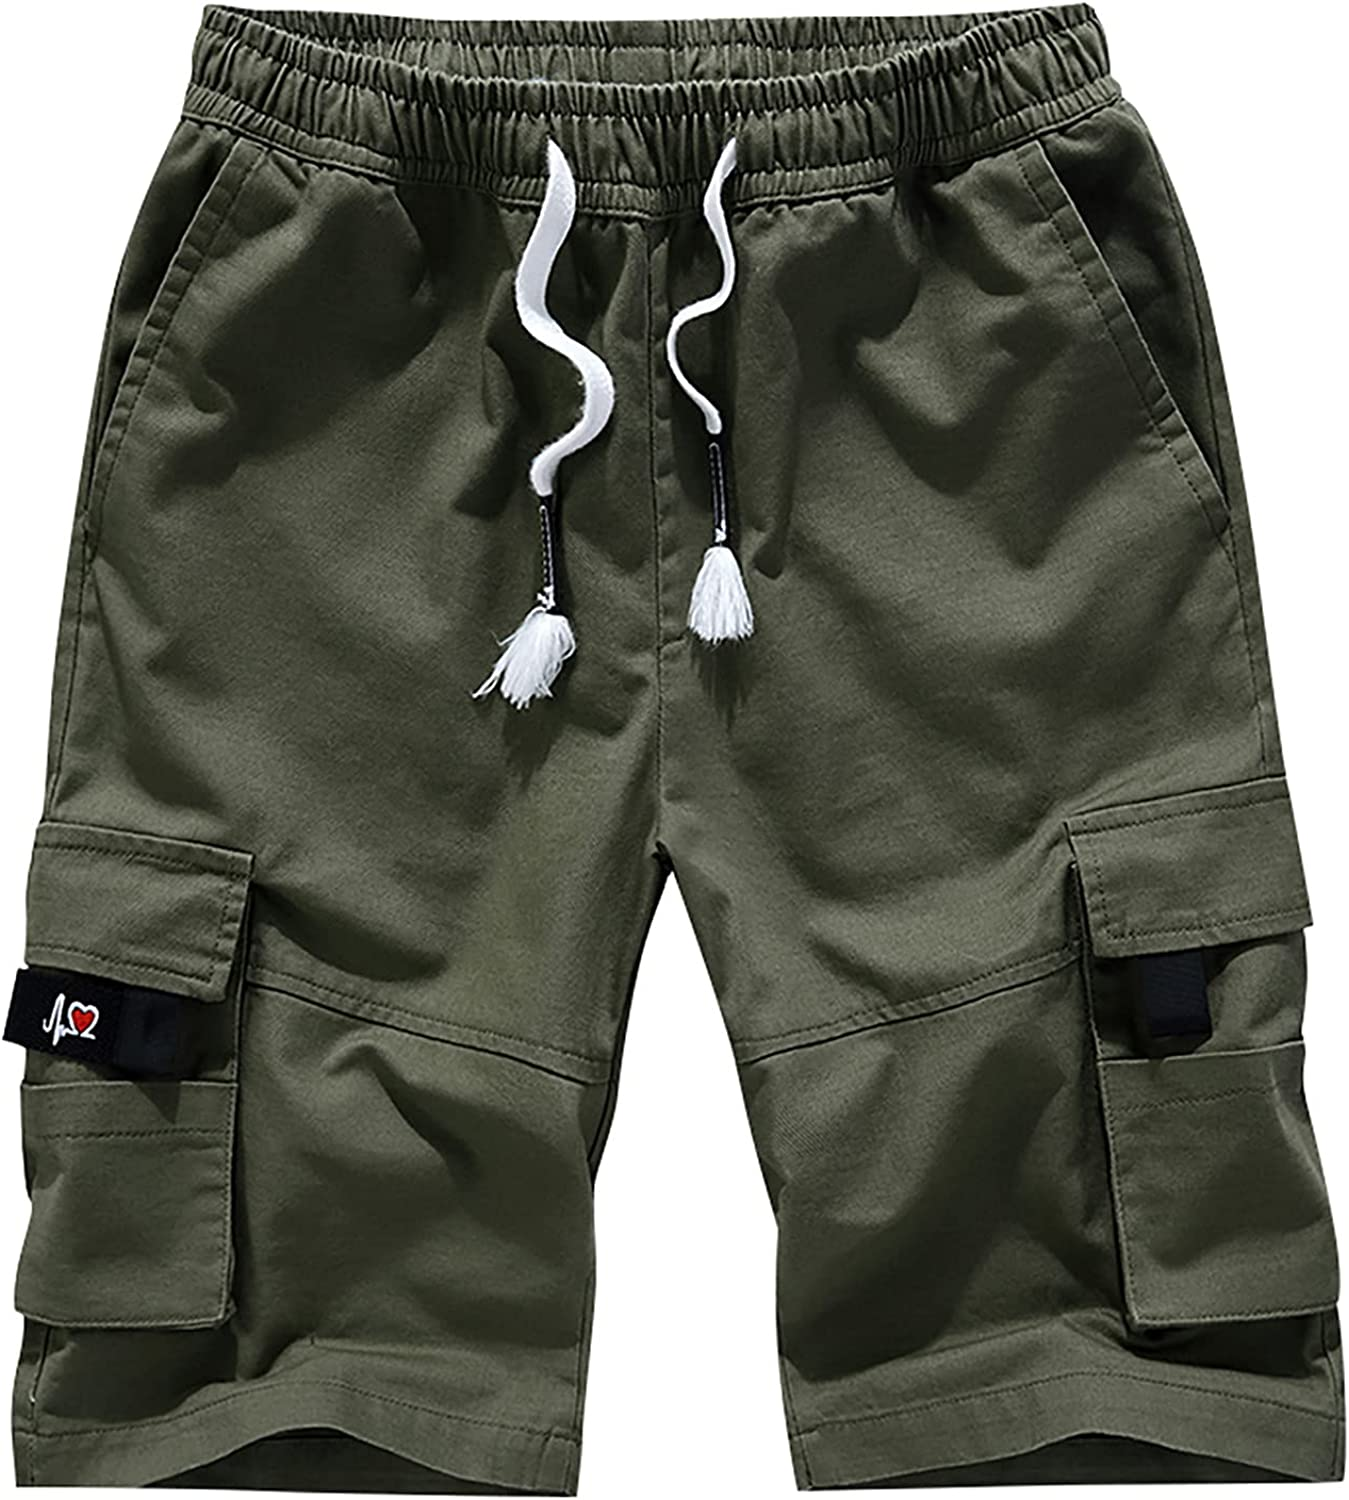 Tantisy Men's Trendy Ultra Soft Drawstring Pocket Pants Five-point Shorts Camouflage and Solid Color Overalls Shorts